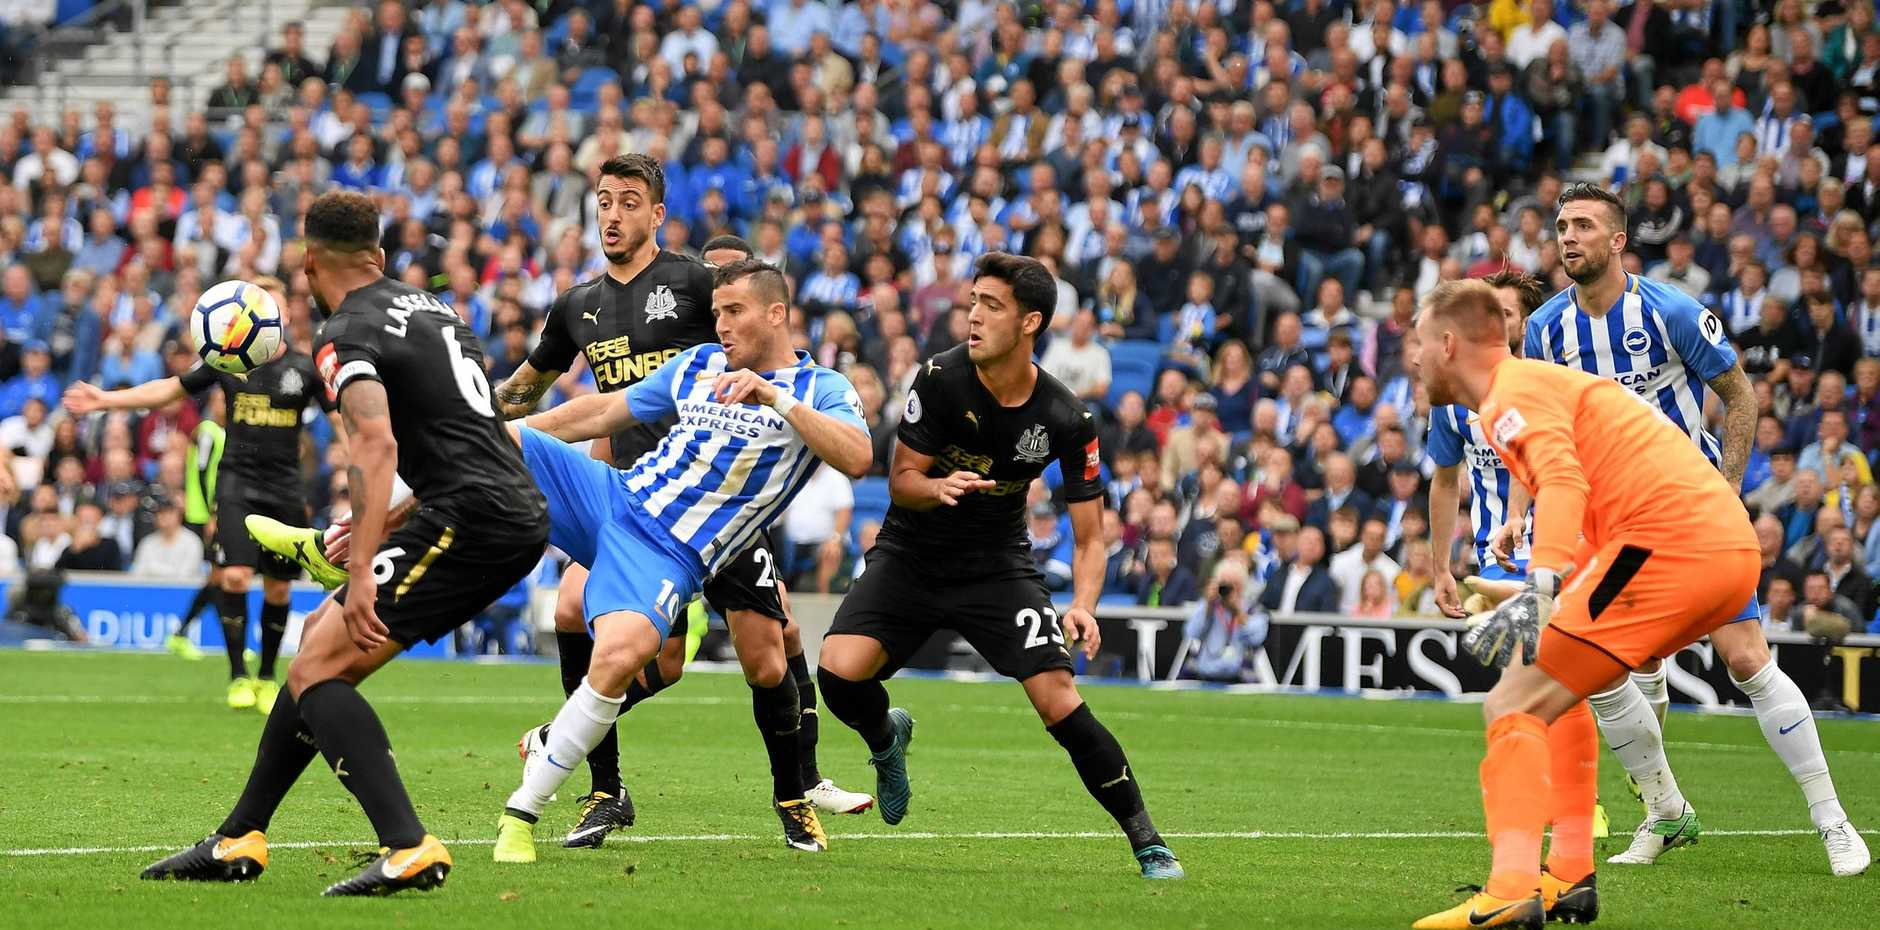 Tomer Hemed (blue and white) of Brighton scores the only goal of the game against Newcastle.